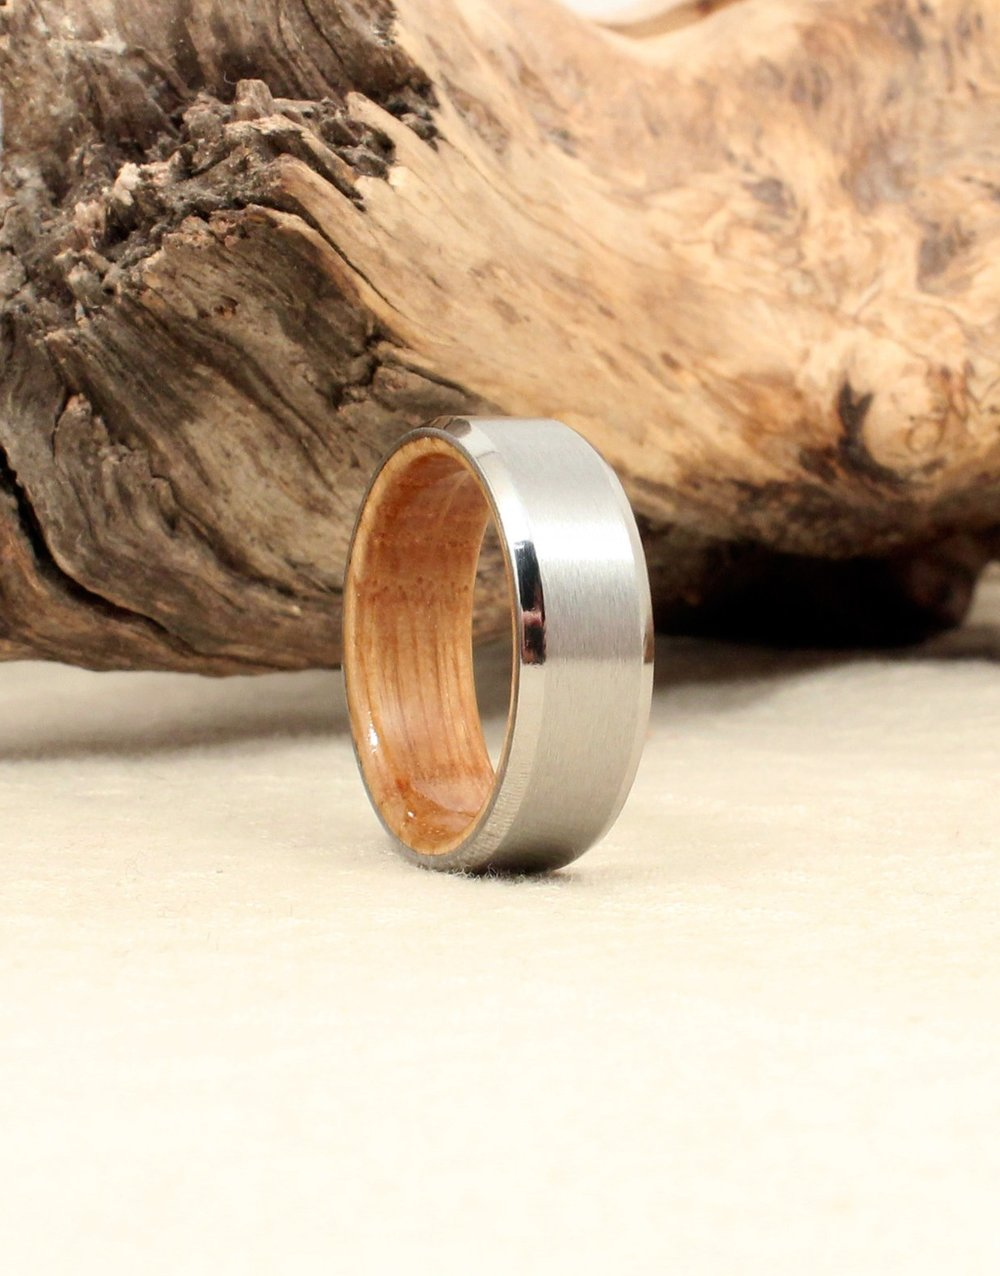 Beveled Cobalt and Whiskey Barrel White Oak Wood Ring